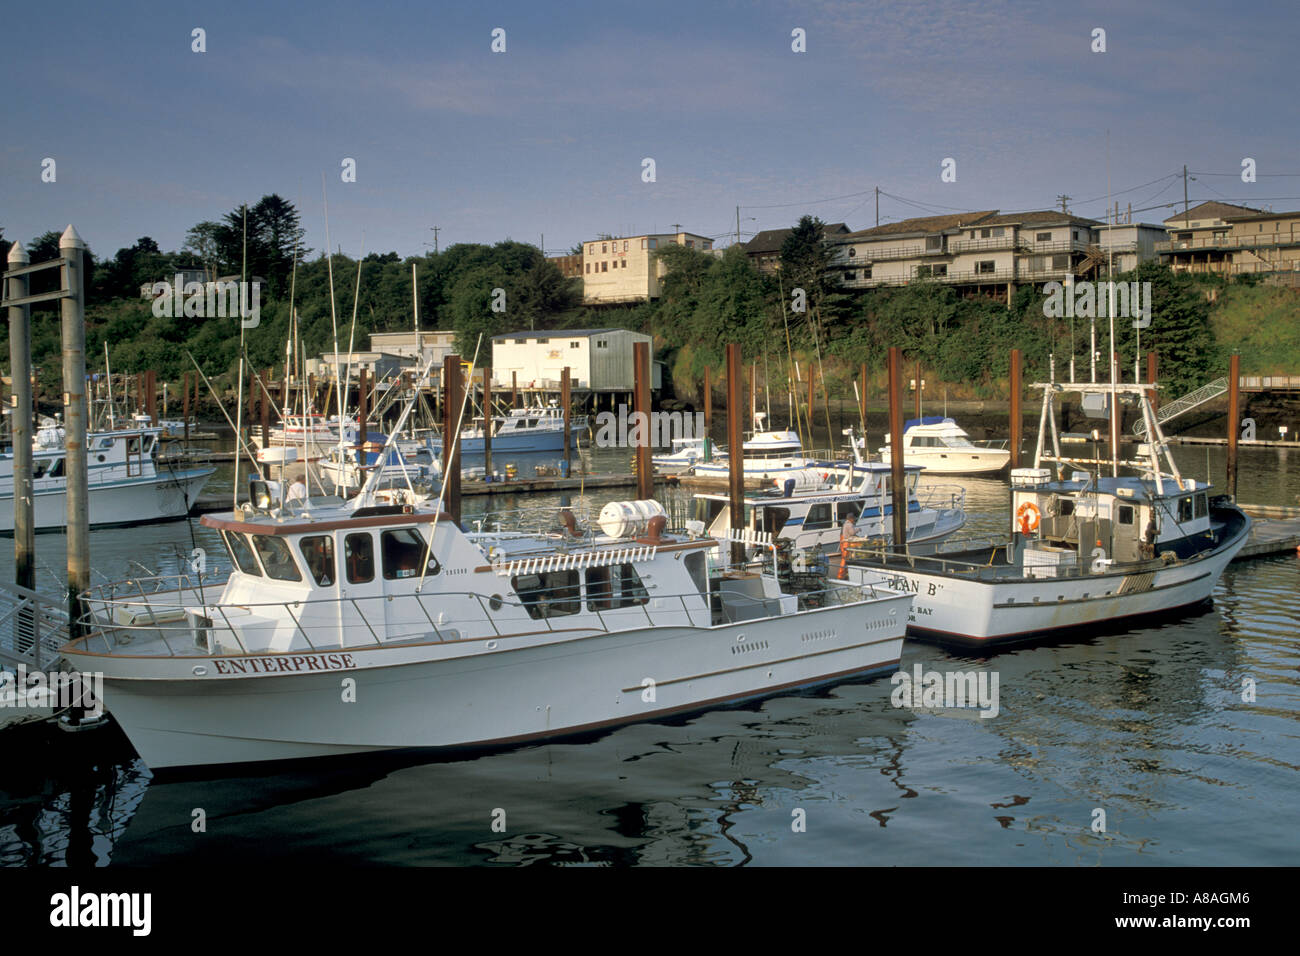 Commercial fishing boats docked in the world s smallest natural navigable harbor at Depoe Bay Oregon Coast Stock Photo